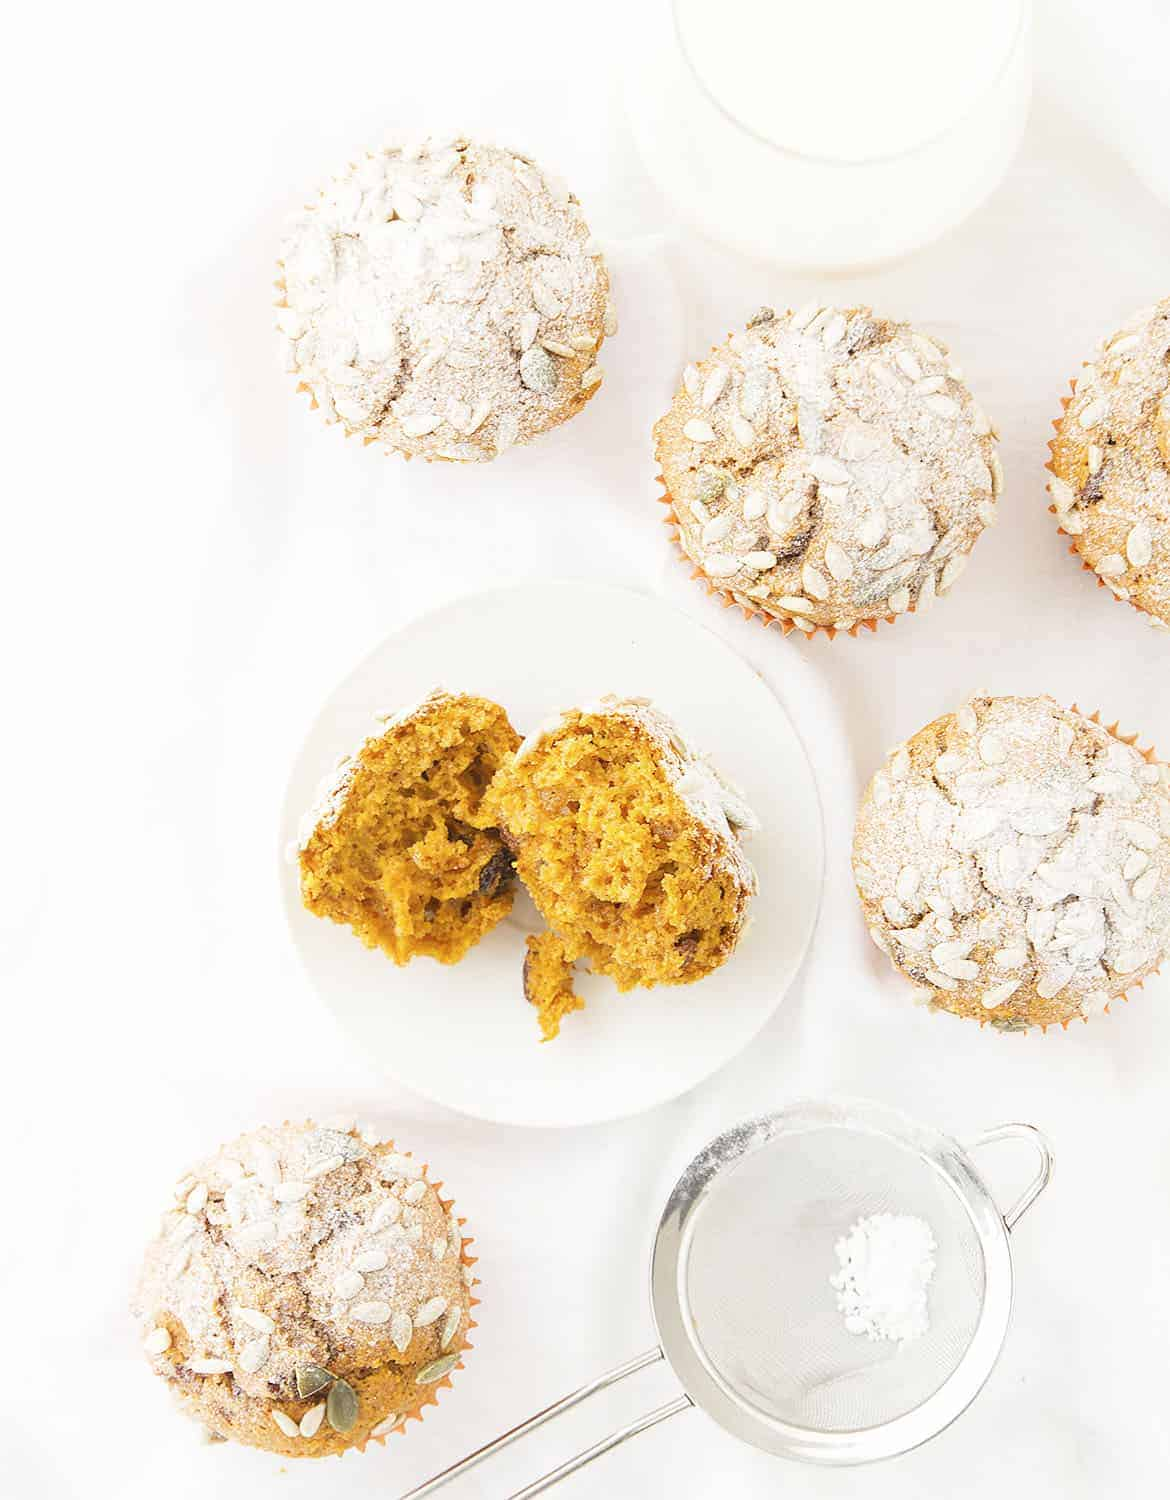 Top view of pumpkin muffins dusted with icing sugar over a white background.